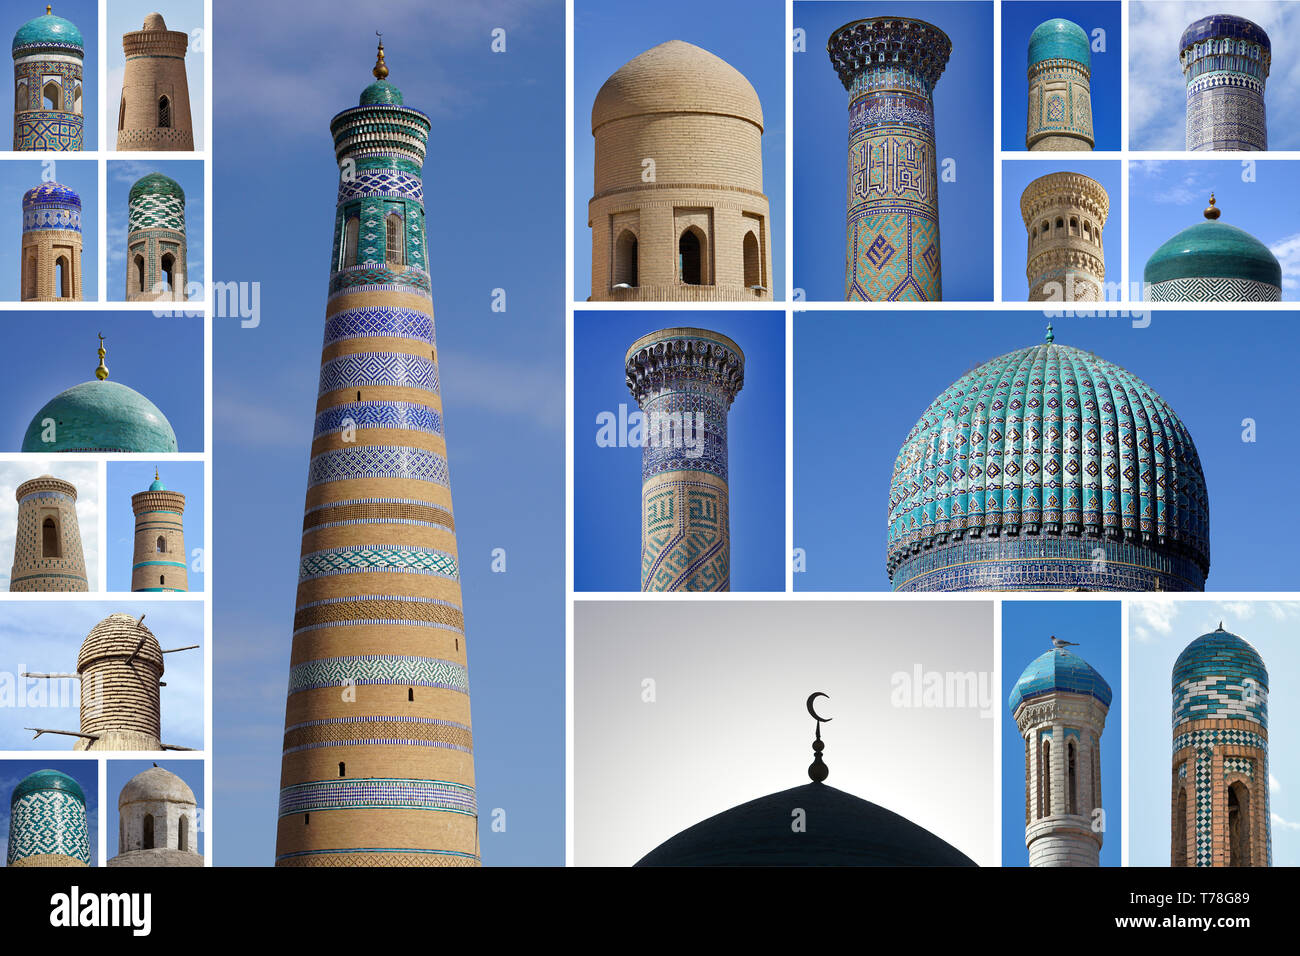 Colorful Decorative Domes And Towers From Uzbekistan